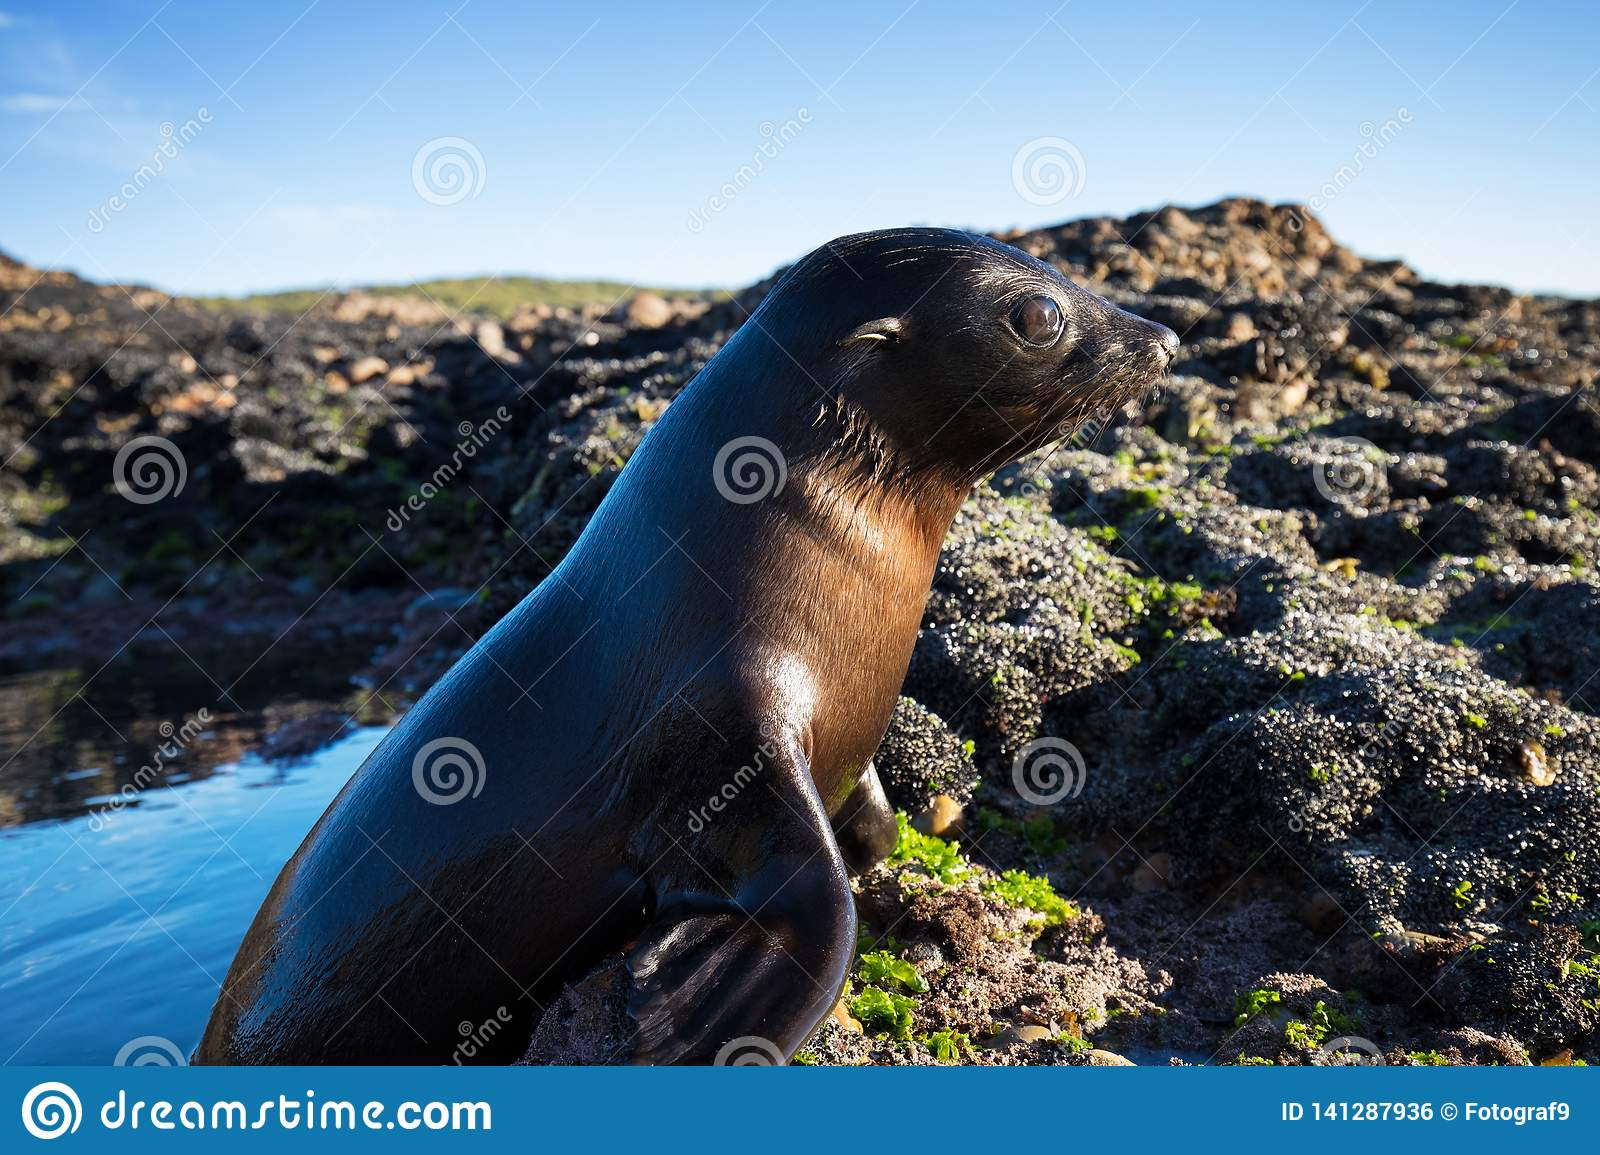 Close up of a New Zealand sea lion Zalophus californianus posing on a rock in the reefs of beach.